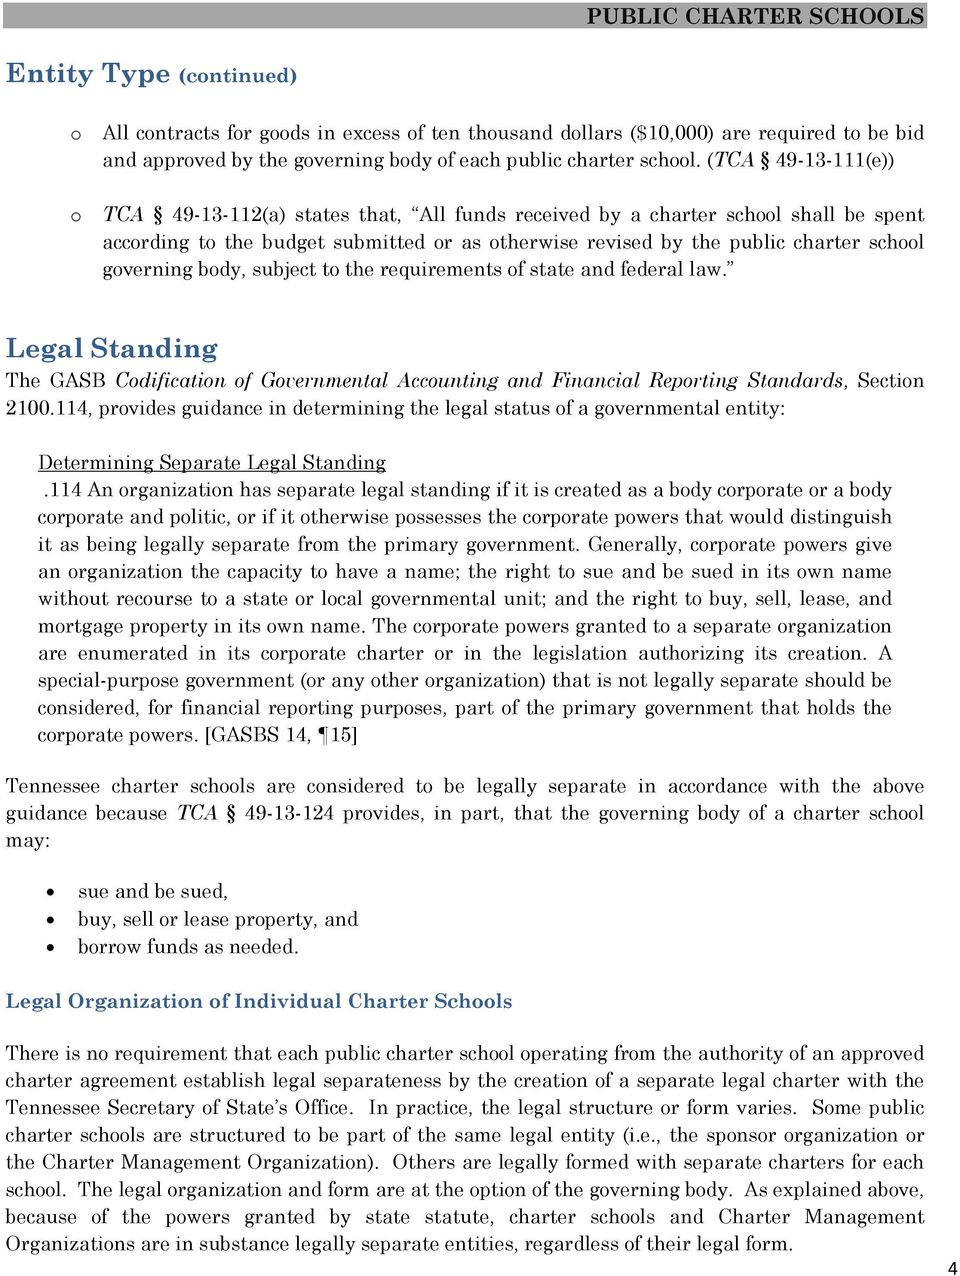 subject t the requirements f state and federal law. Legal Standing The GASB Cdificatin f Gvernmental Accunting and Financial Reprting Standards, Sectin 2100.